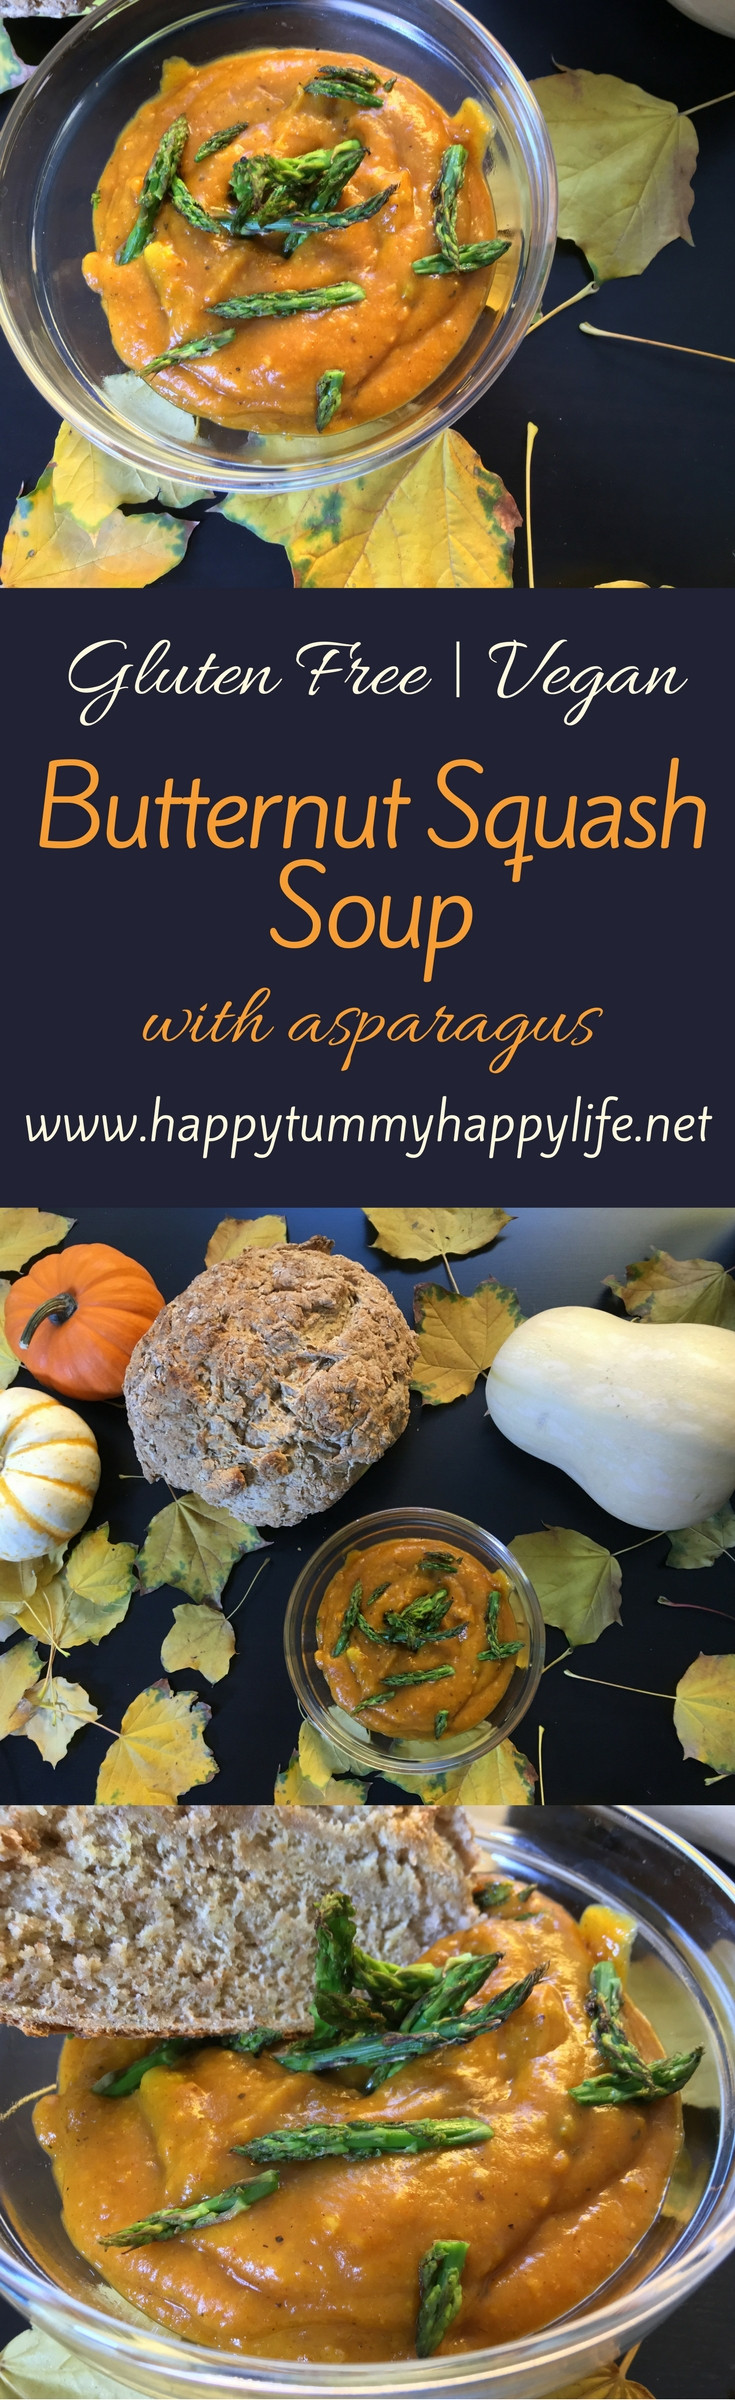 Butternut Squash Soup | Recipes with Turmeric | Gluten Free | Vegan | Vegetarian Recipes | Dairy Free | Dinner Recipes | Lunch Recipes | Fall Food | Healthy Recipes | Thanksgiving Recipes